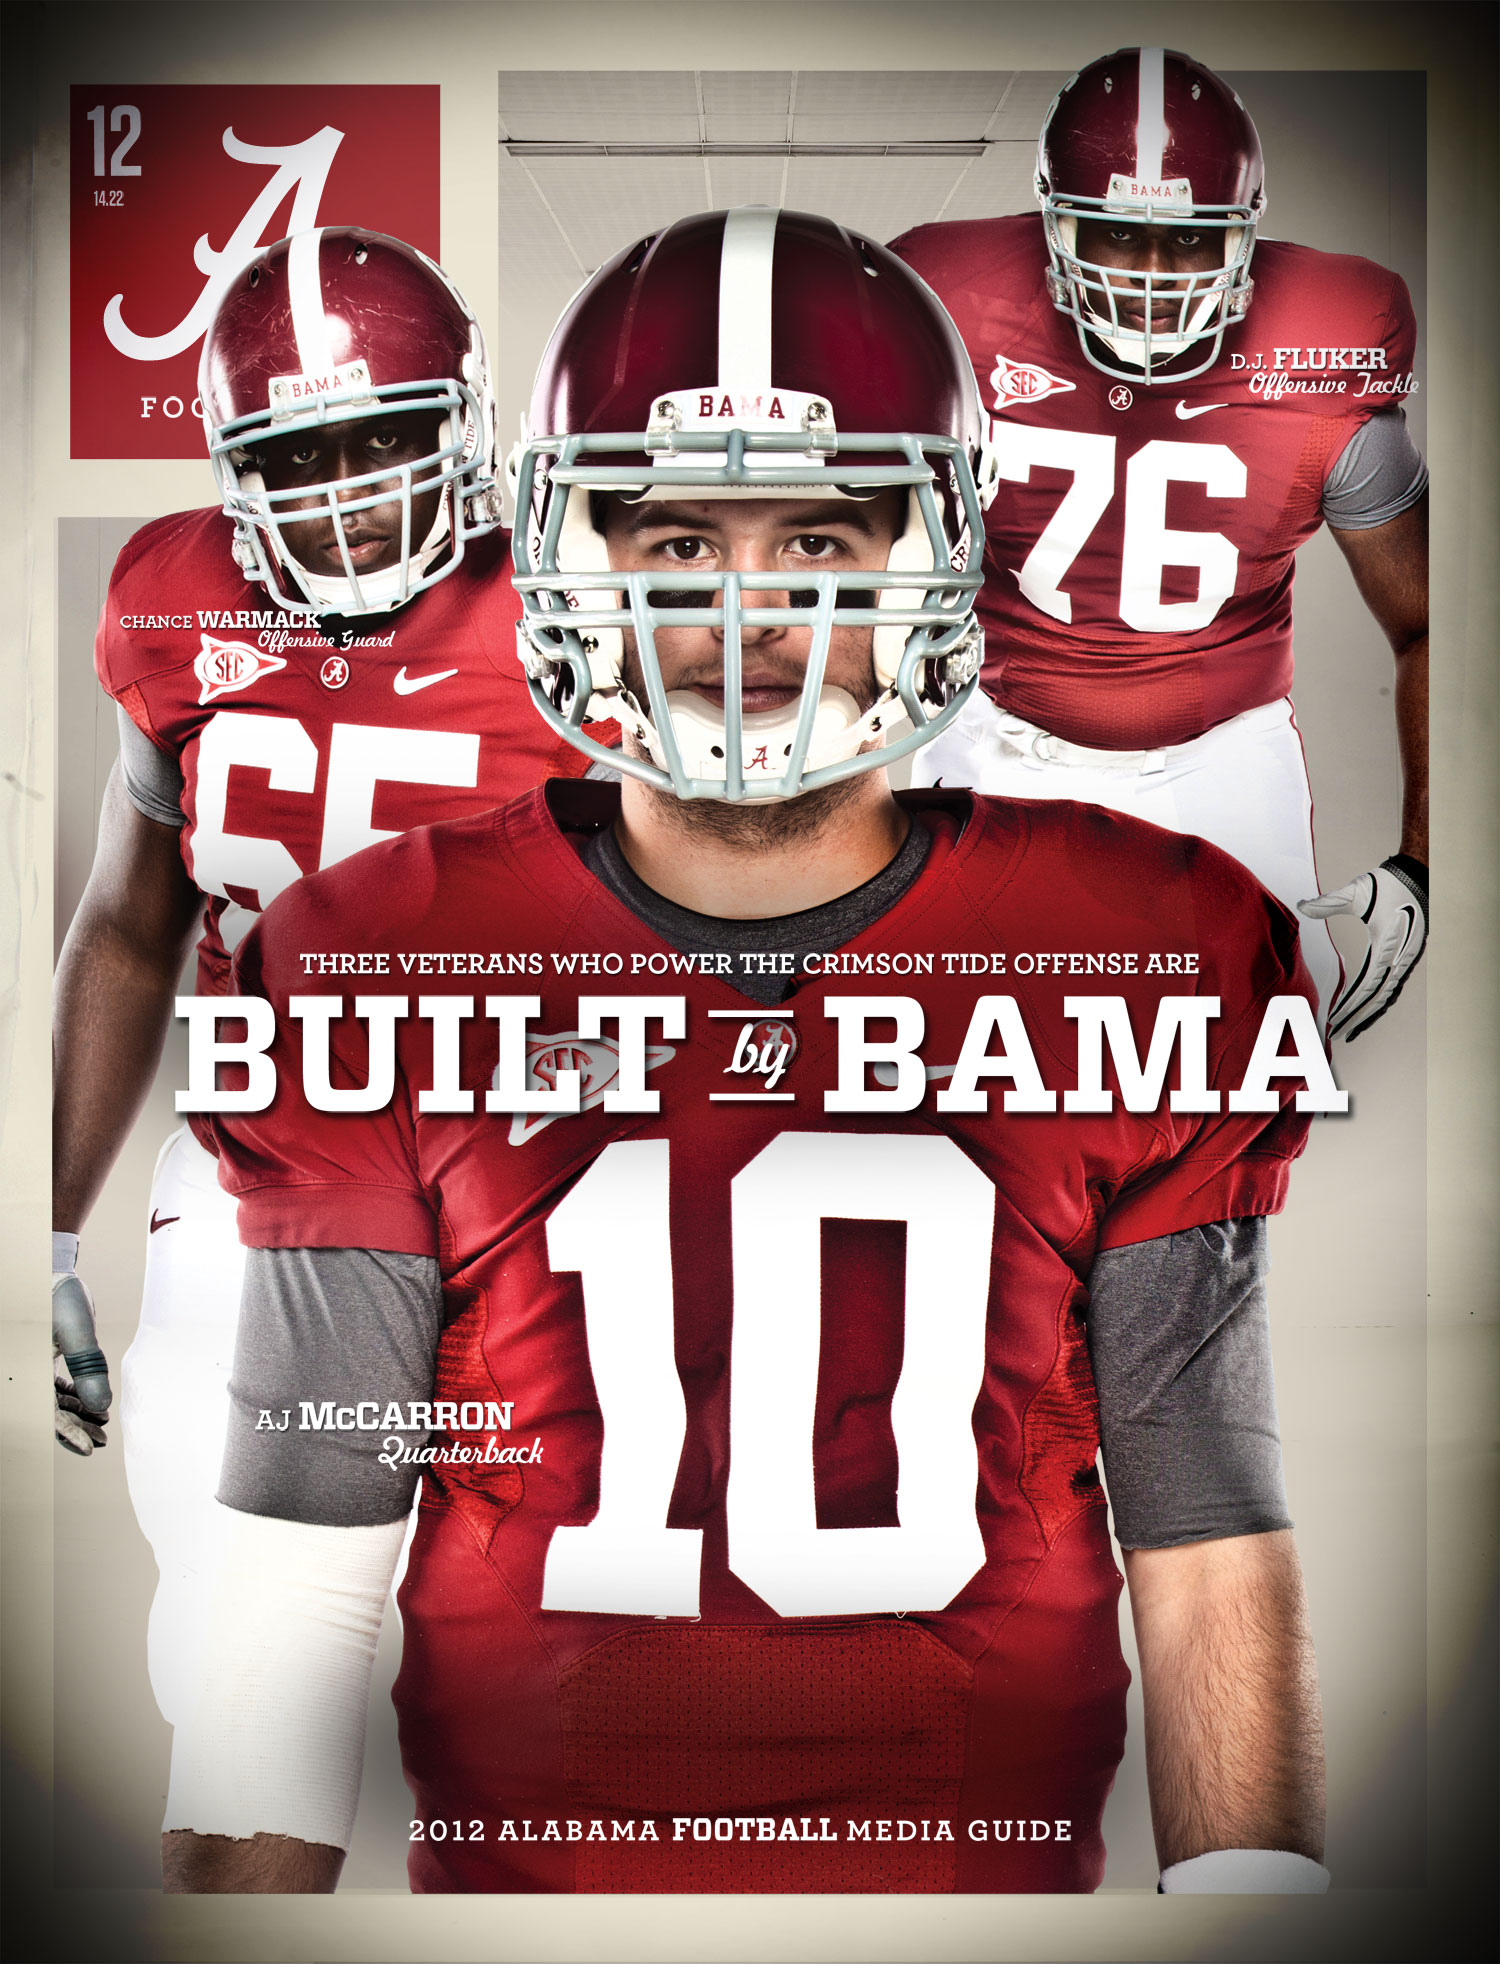 1000+ images about Alabama football on Pinterest | Volkswagen